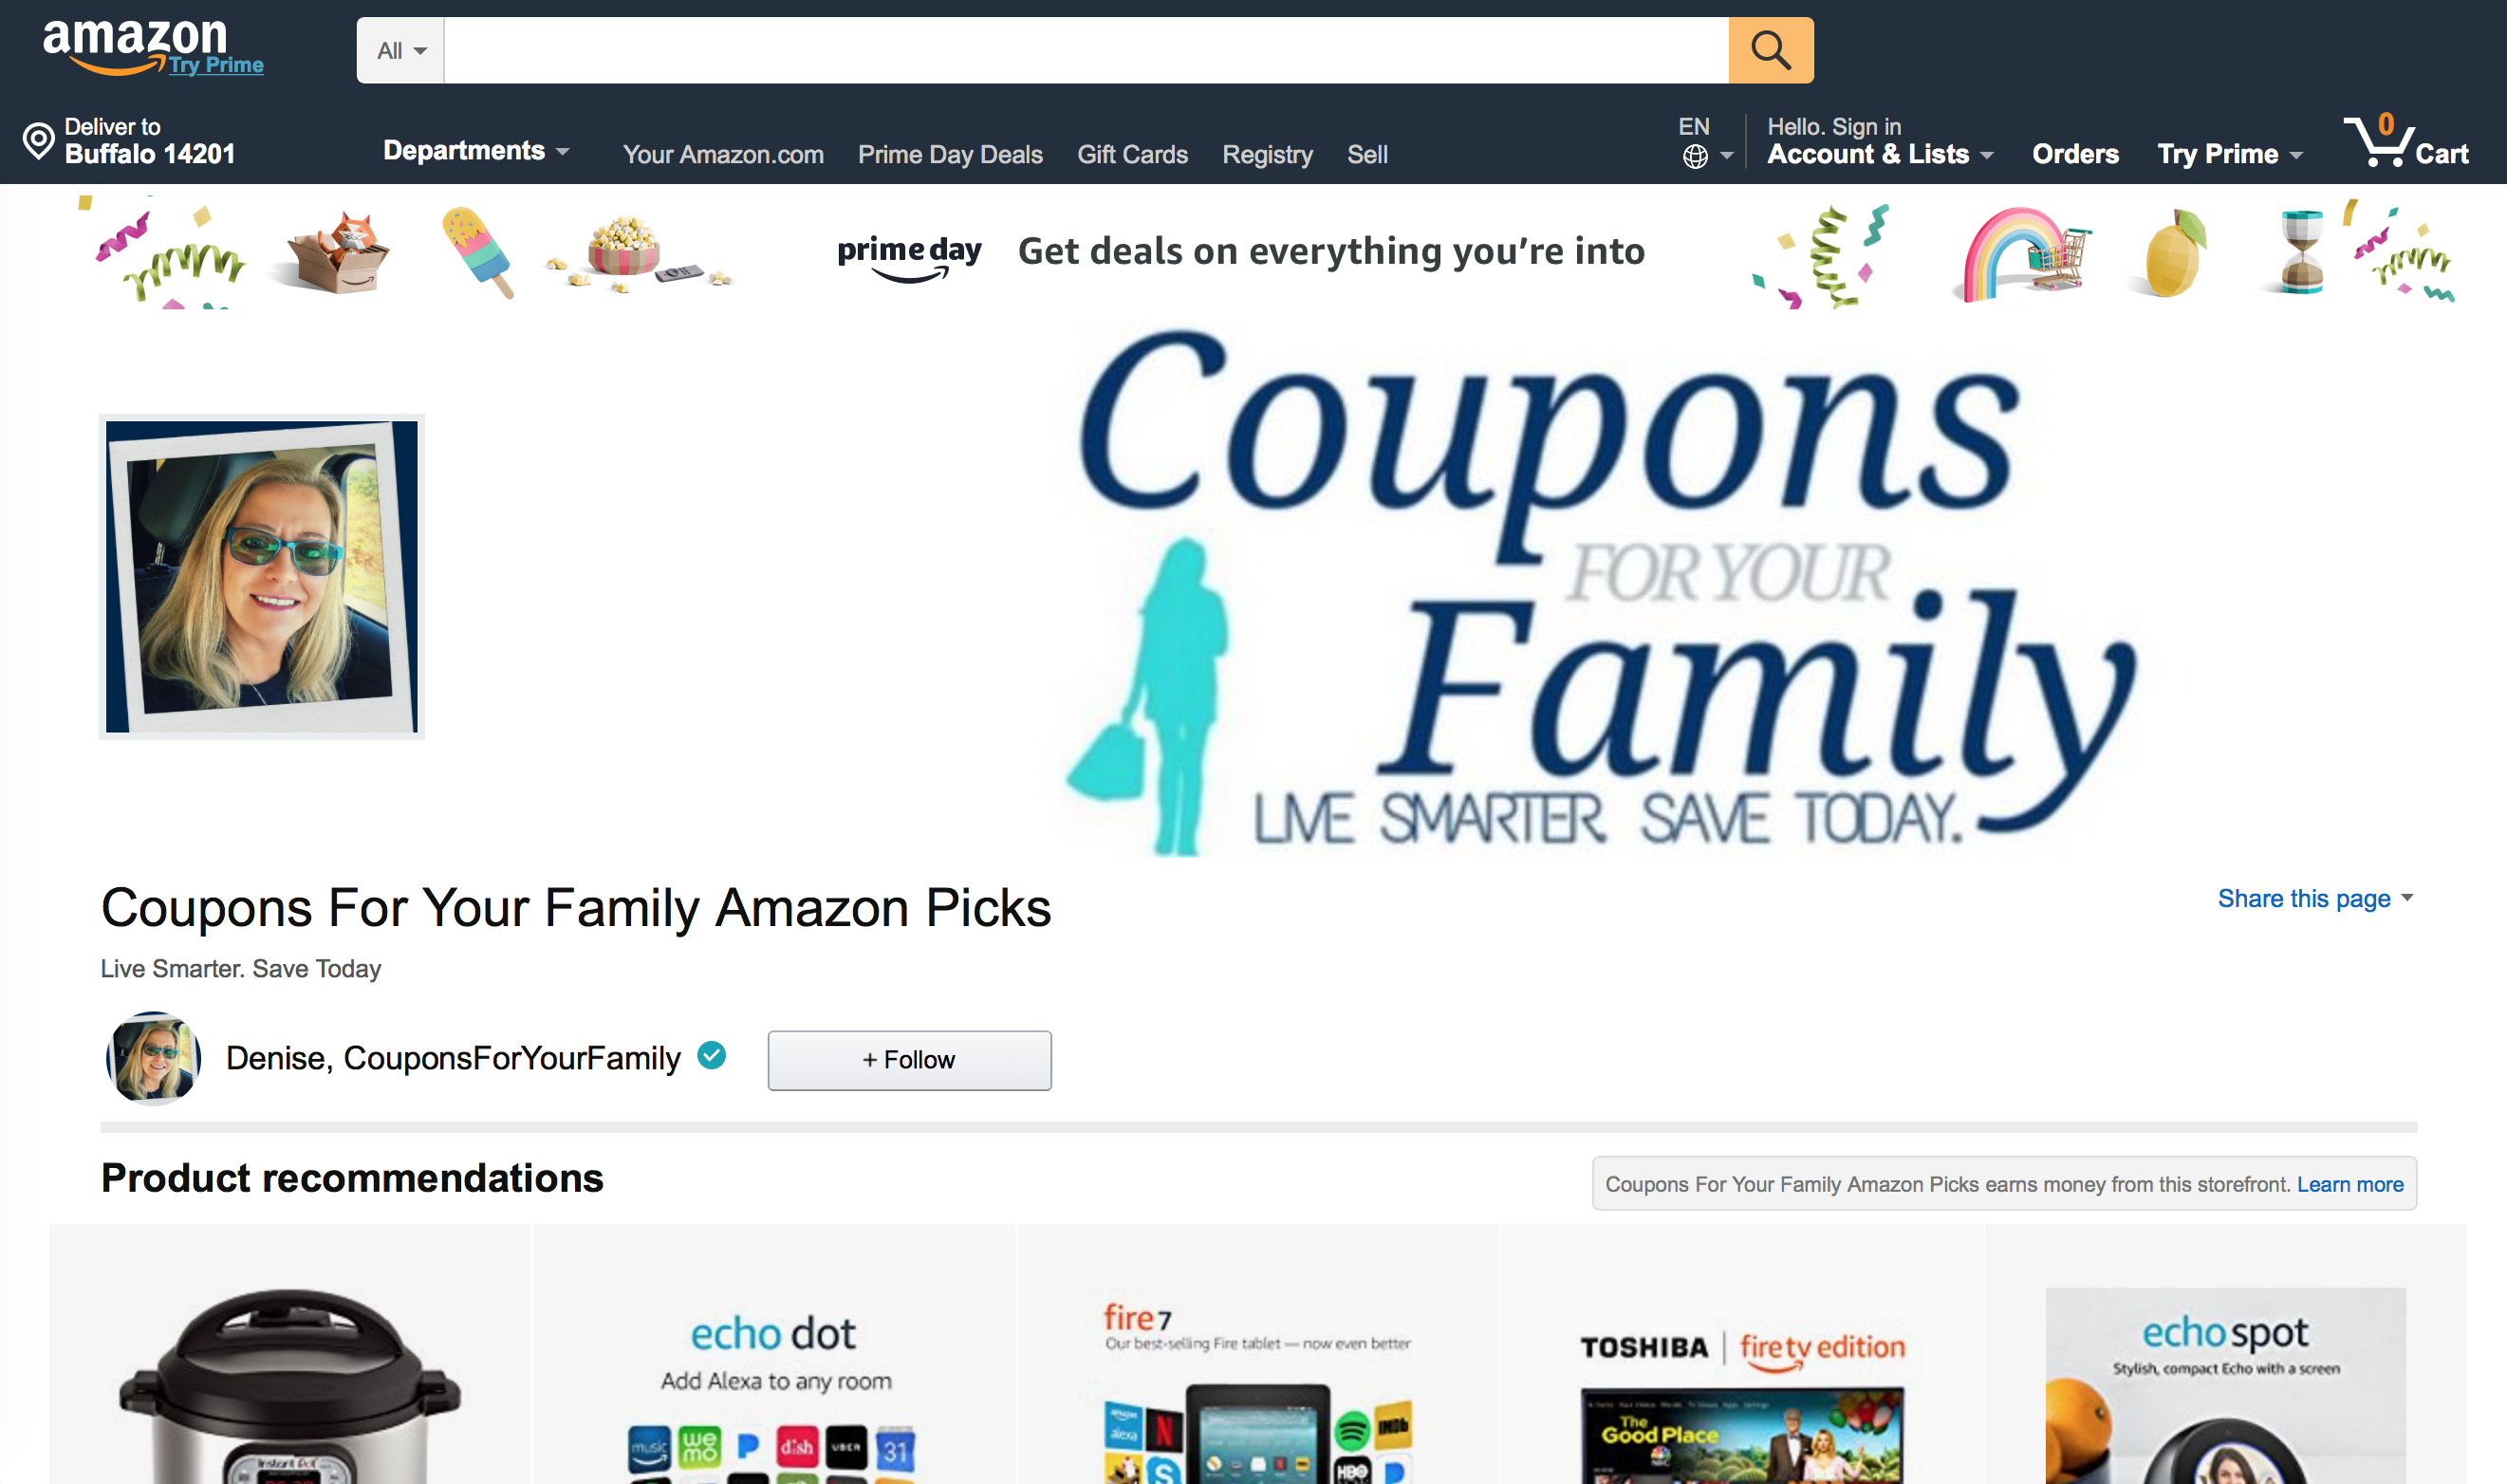 Coupons For Your Family Amazon Storefront